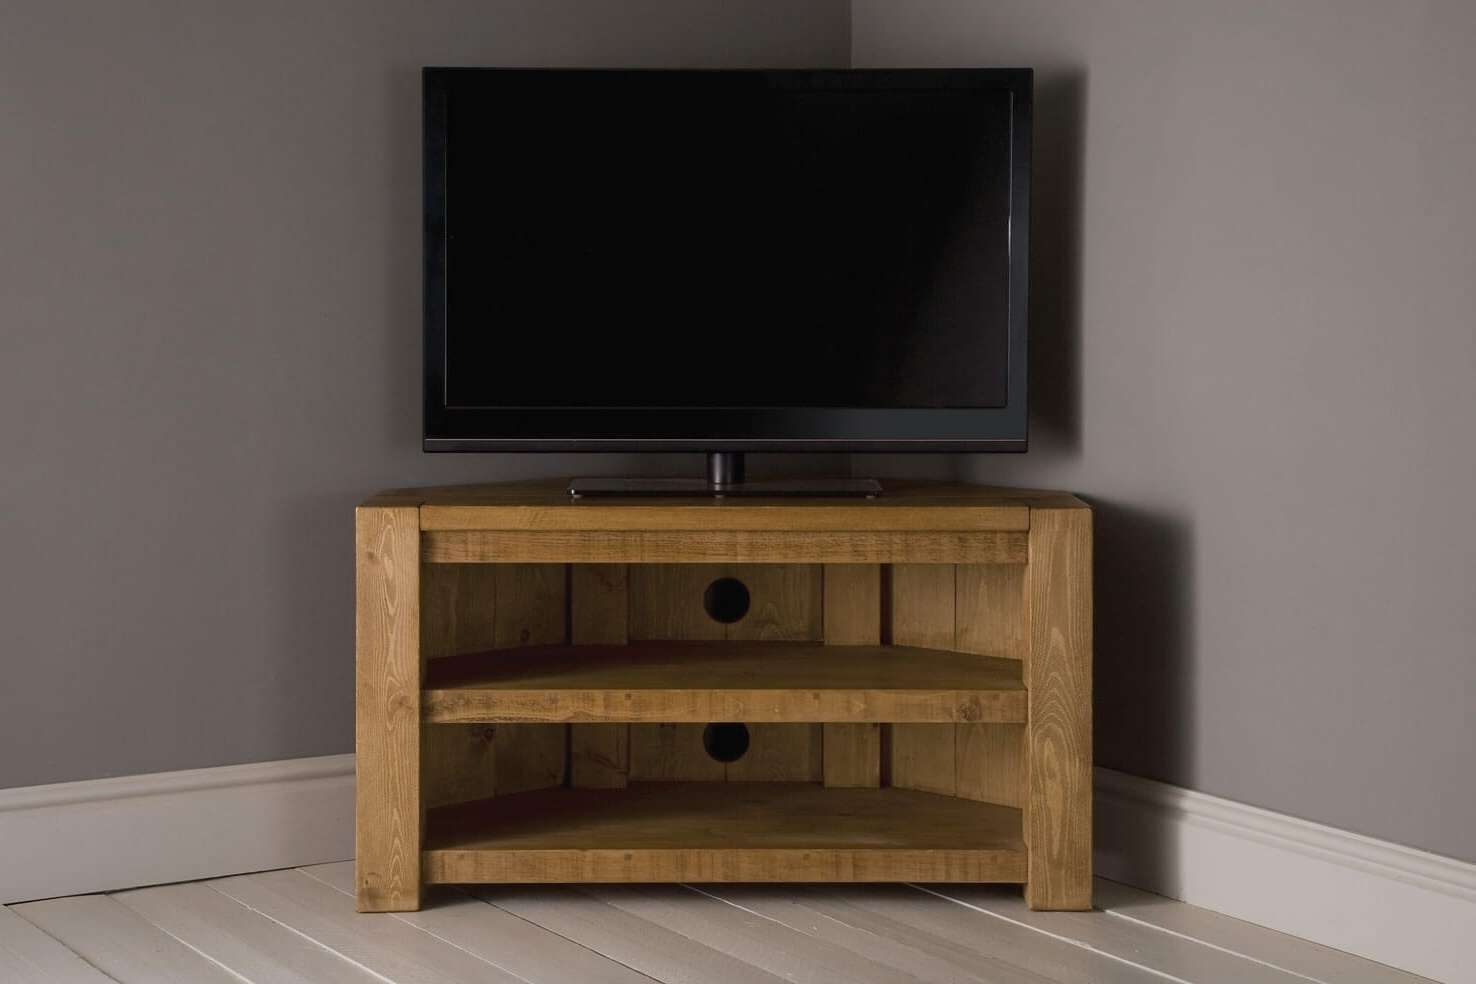 Plank Beam Corner Tv Unit With Shelfindigo Furniture Intended For Wooden Corner Tv Cabinets (View 9 of 20)